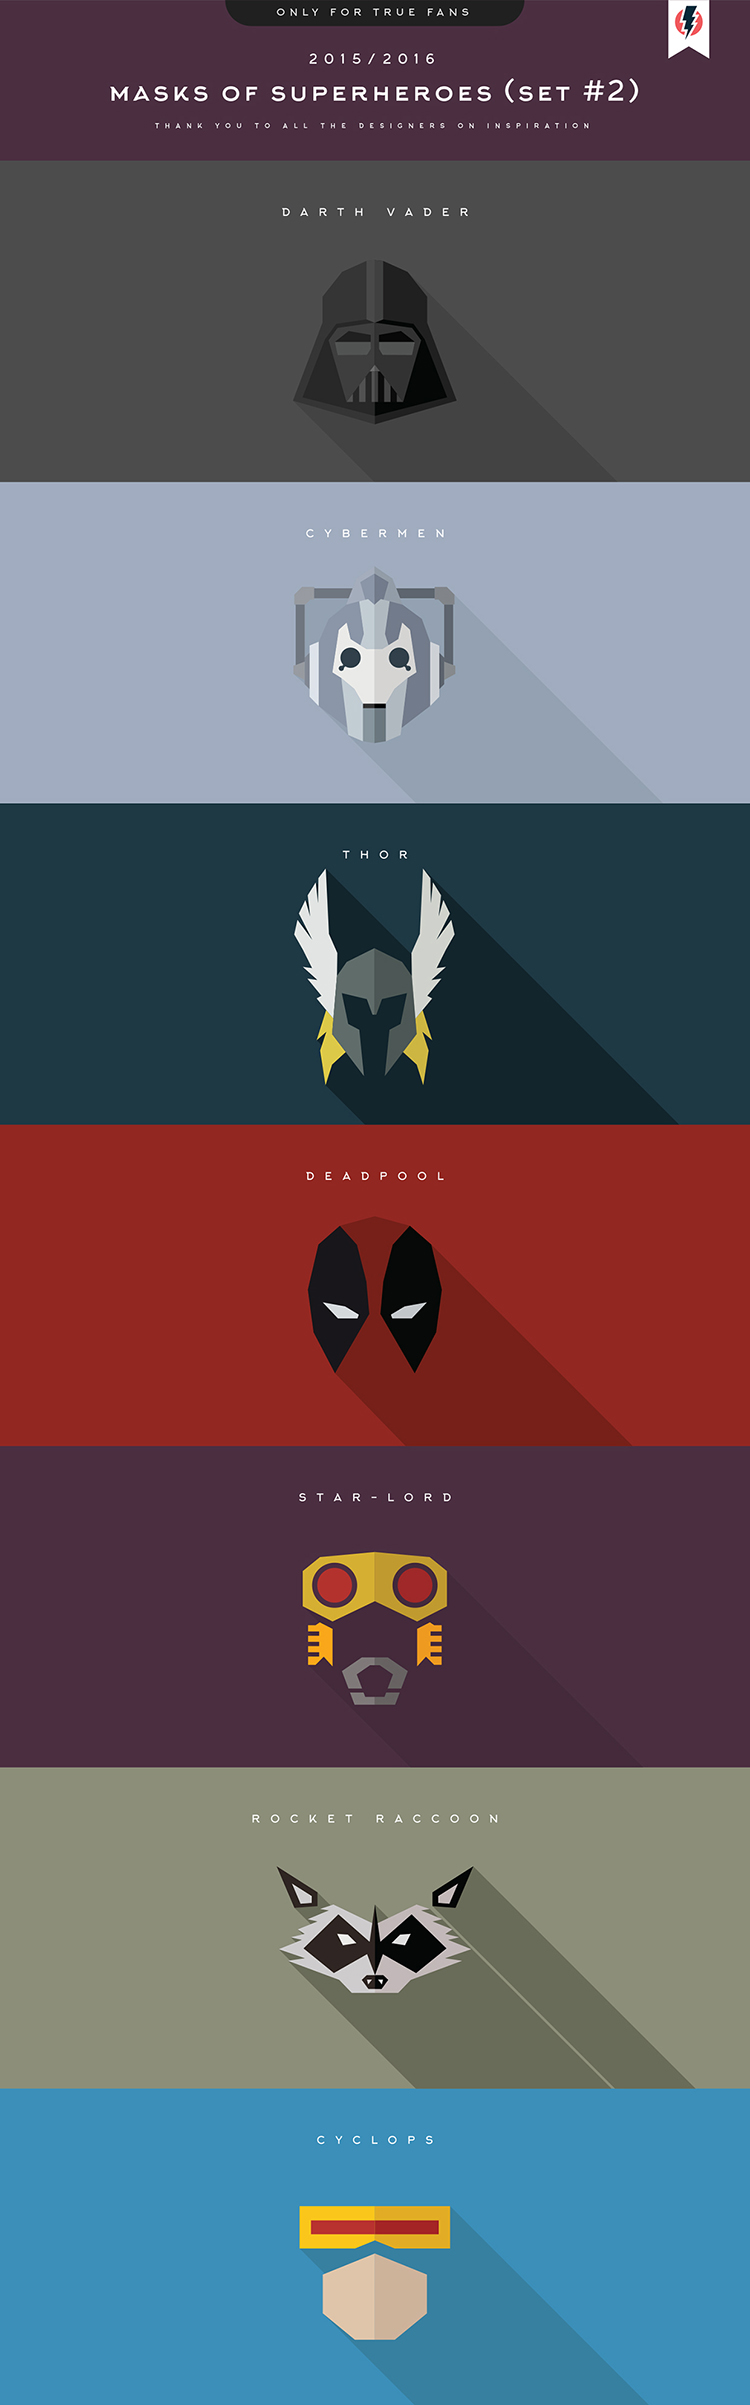 Masks of SuperHeroes